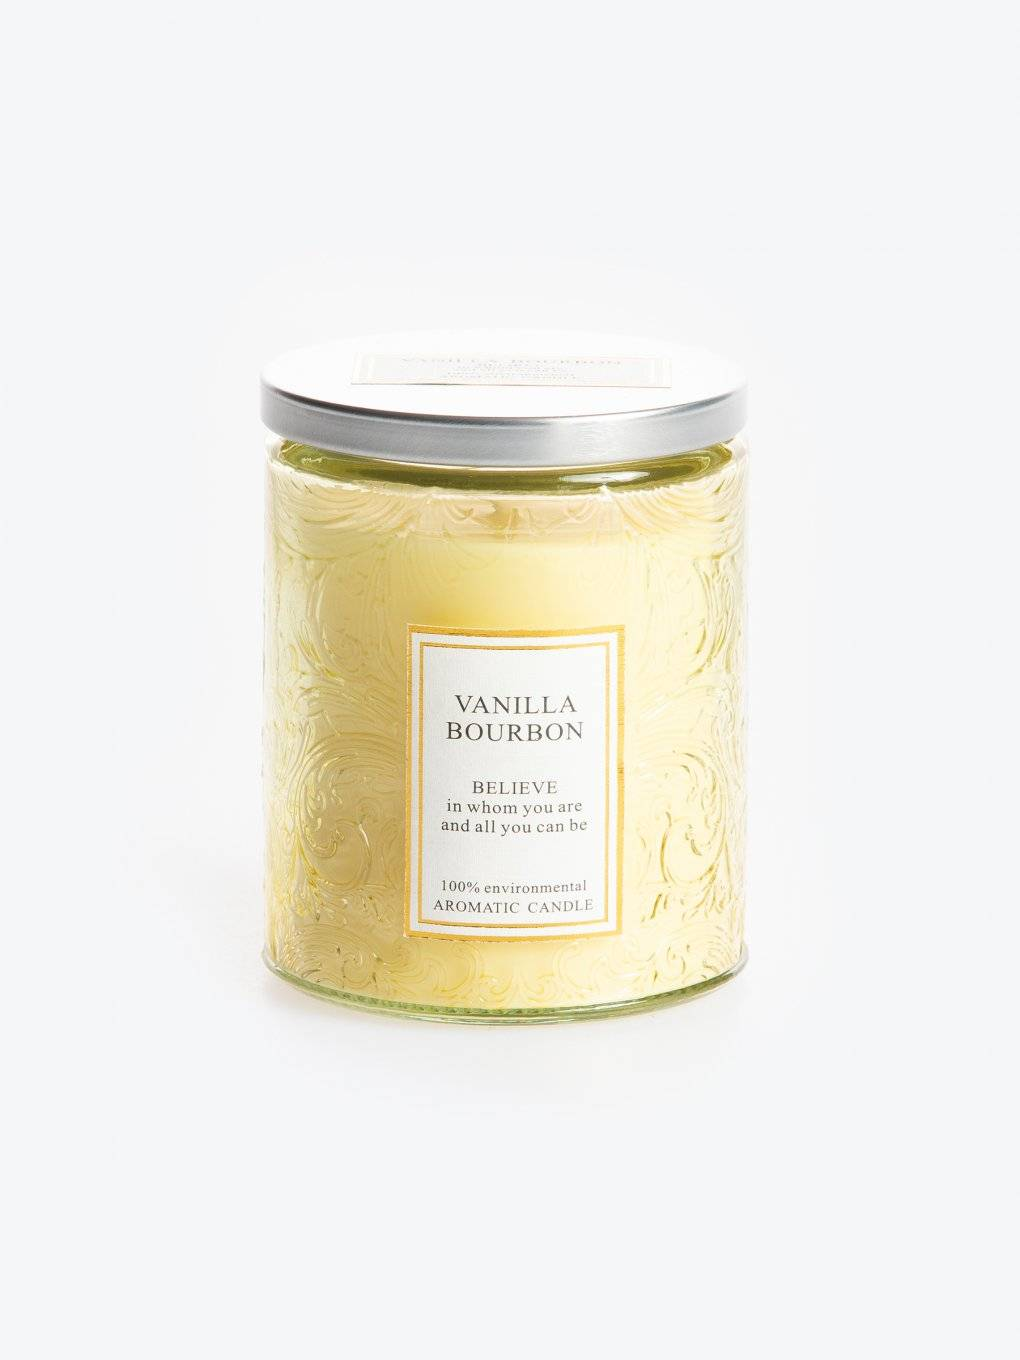 Vanilla bourbon scented candle